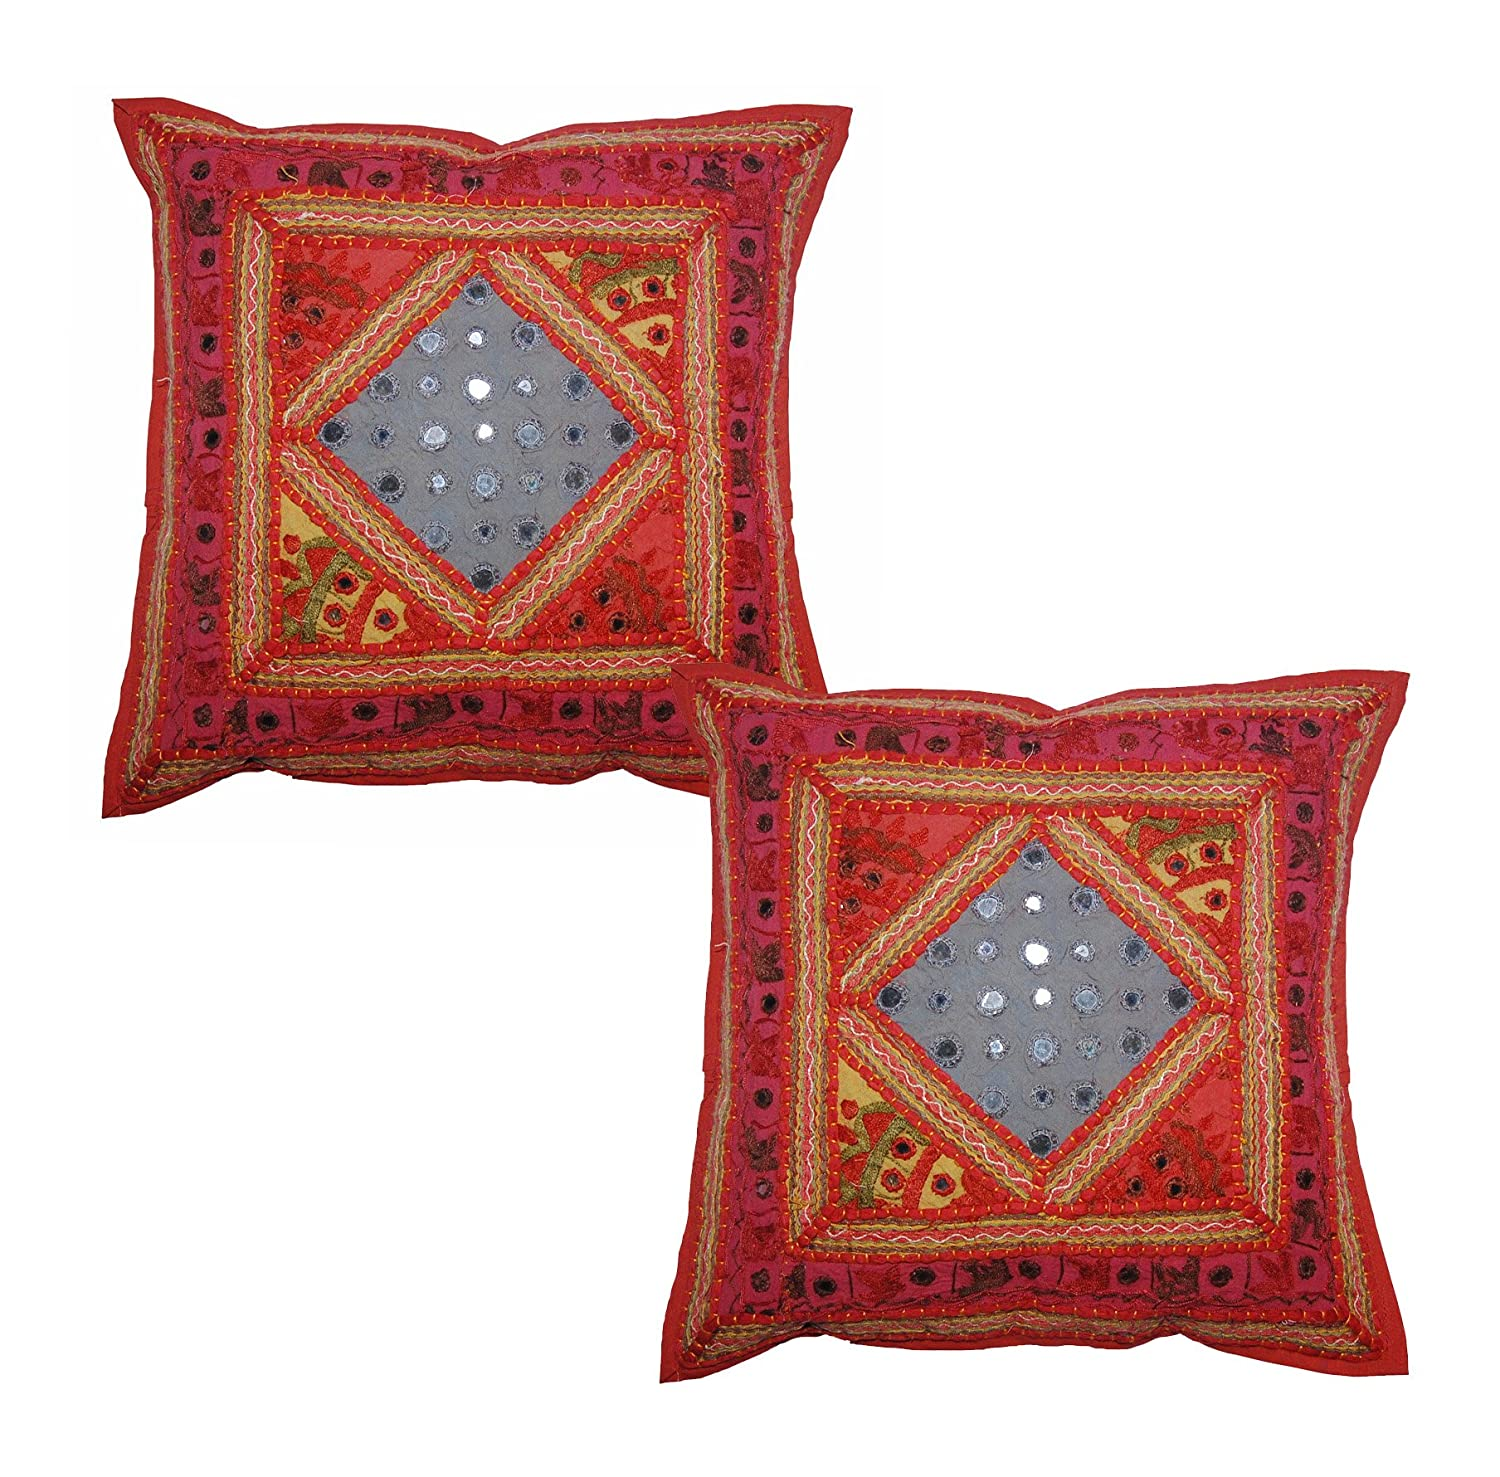 Ethnic 16 Indian Cotton Cushion Cover With Embroidery Patchwork Set Of 2 Pillows